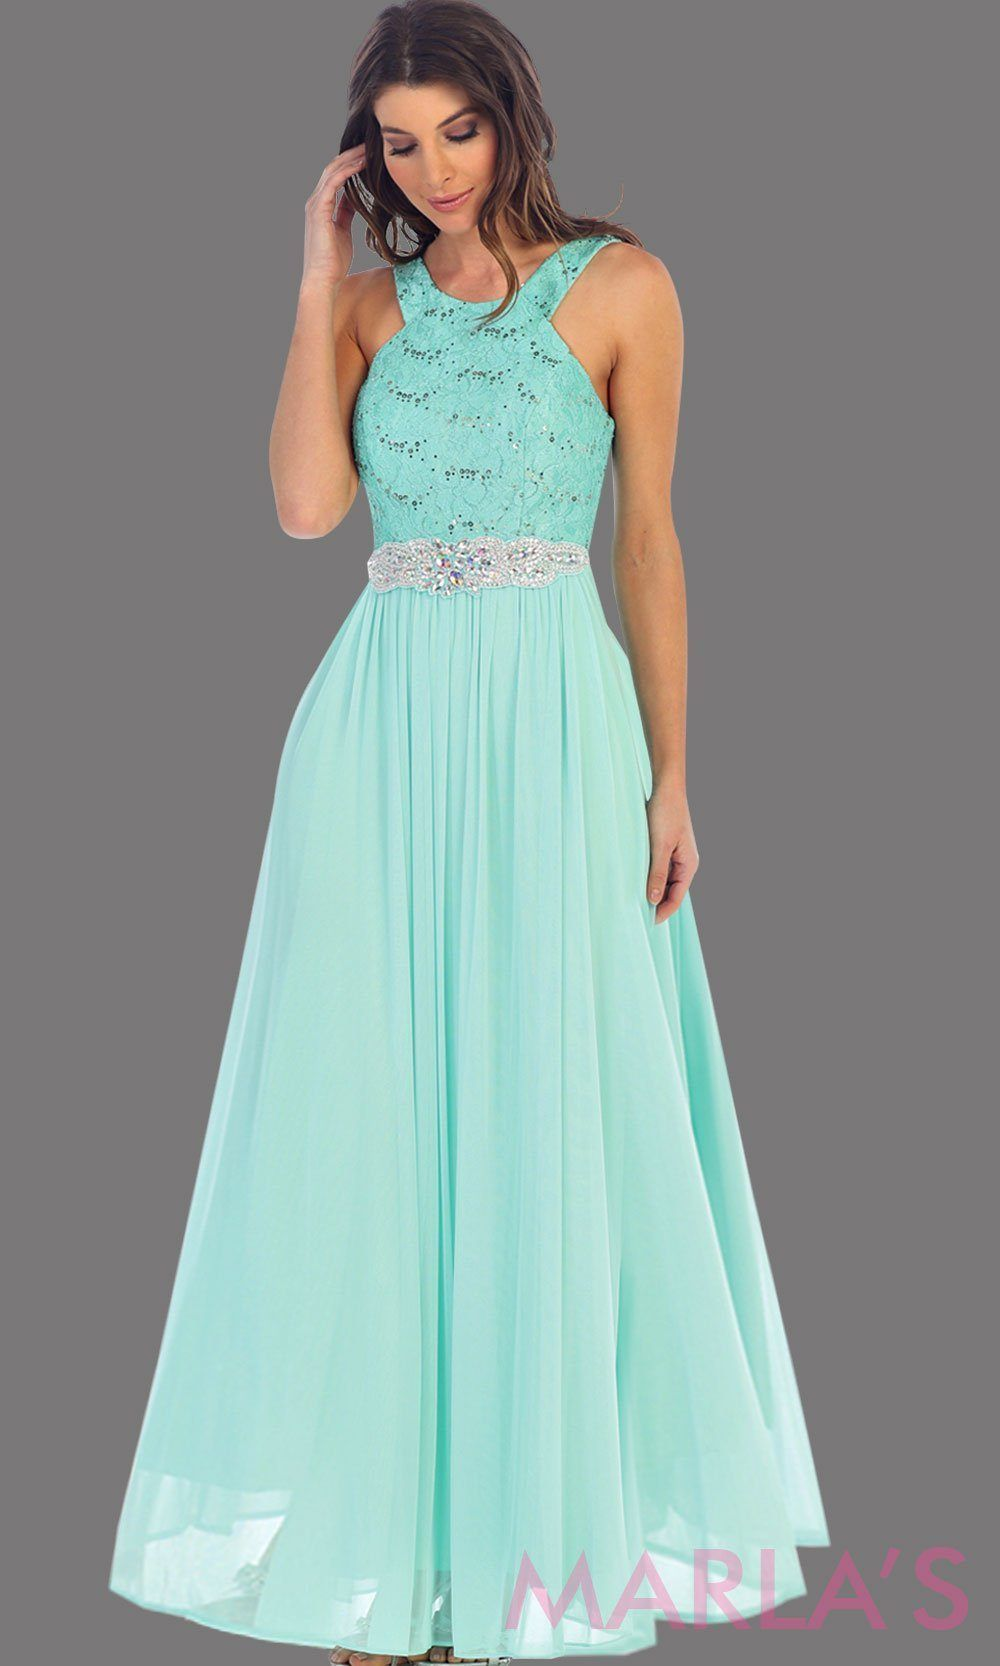 492e0a63a32 Long high neck mint flowy party dress. The high neck is lace and flows into